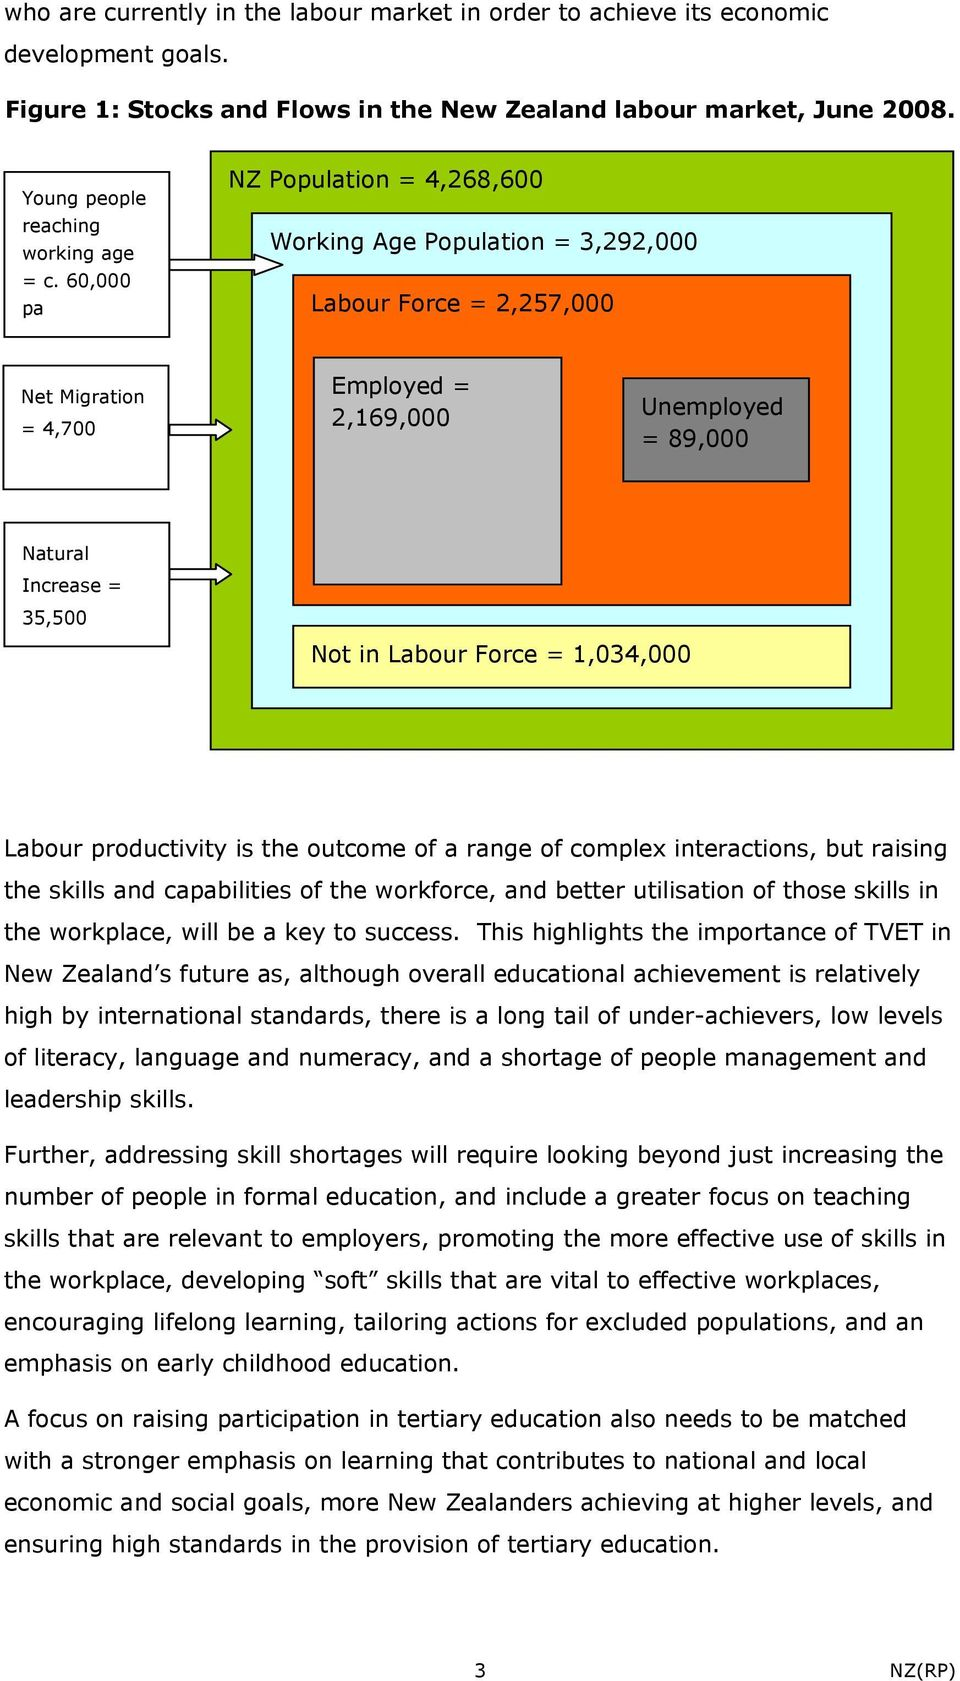 60,000 pa NZ Population = 4,268,600 Working Age Population = 3,292,000 Labour Force = 2,257,000 Net Migration = 4,700 Employed = 2,169,000 Unemployed = 89,000 Natural Increase = 35,500 Not in Labour